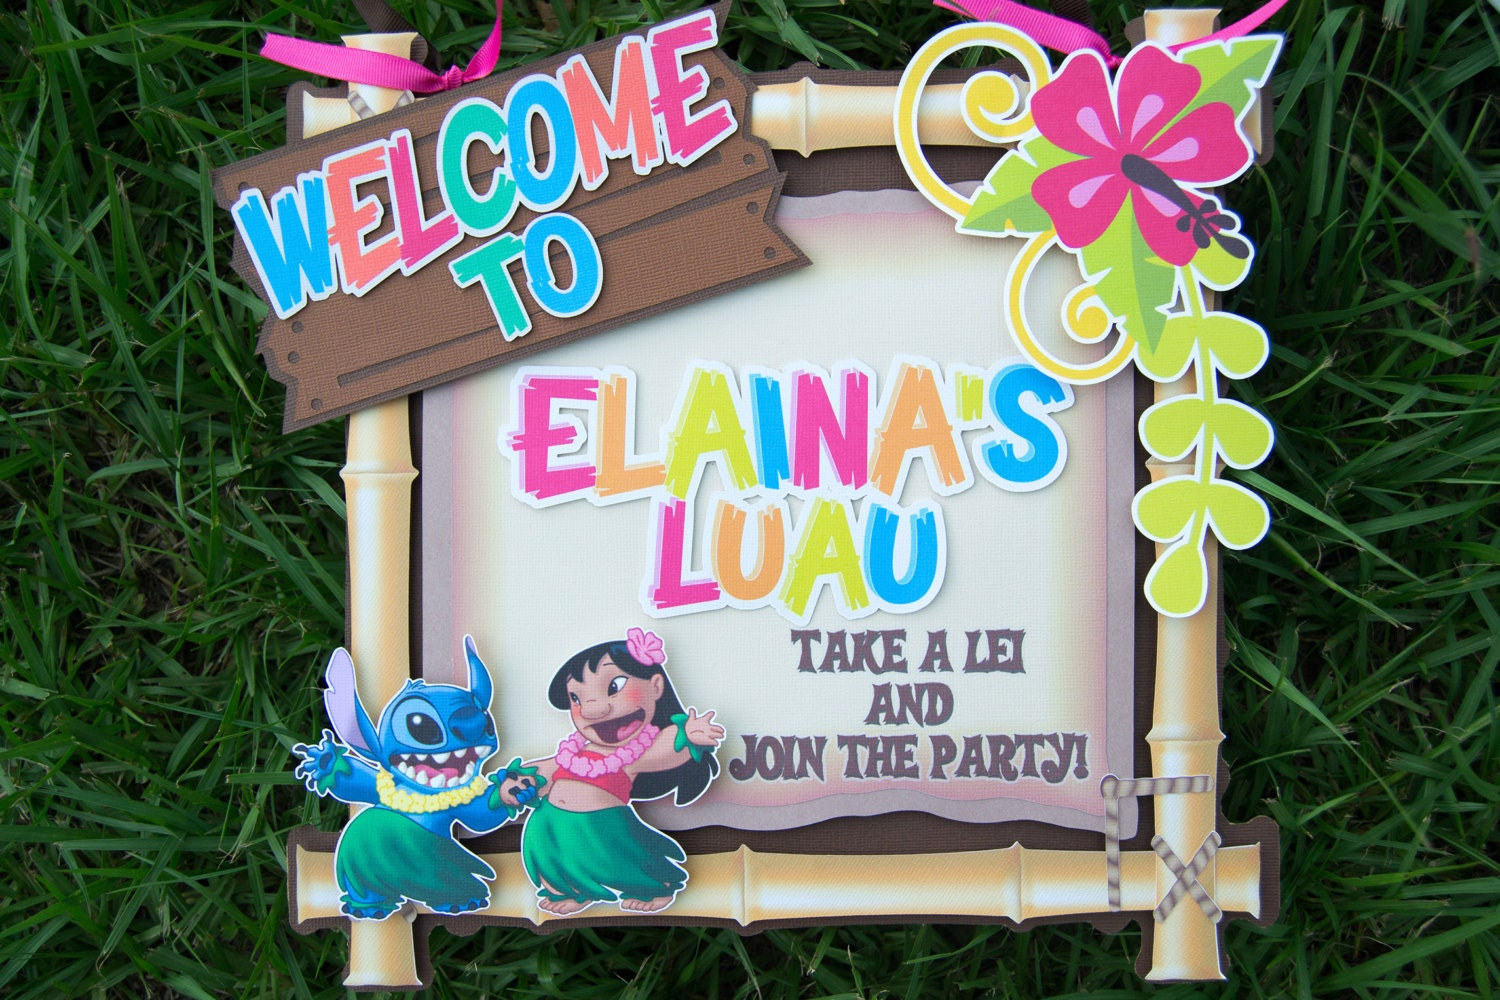 Lilo And Stitch Door Sign Luau Party Hawaiian By. In Demand Masters Degrees Web Builder Reviews. Vegetative Symptoms Of Depression. Massage School Illinois University Of Columbia. University Of Cincinnati Mba. Elite Appliance Repair Maid Service Arlington. Online Accounting Degree Aacsb. Home Financing After Bankruptcy. How To Find Programmers Insurance Rochester Ny